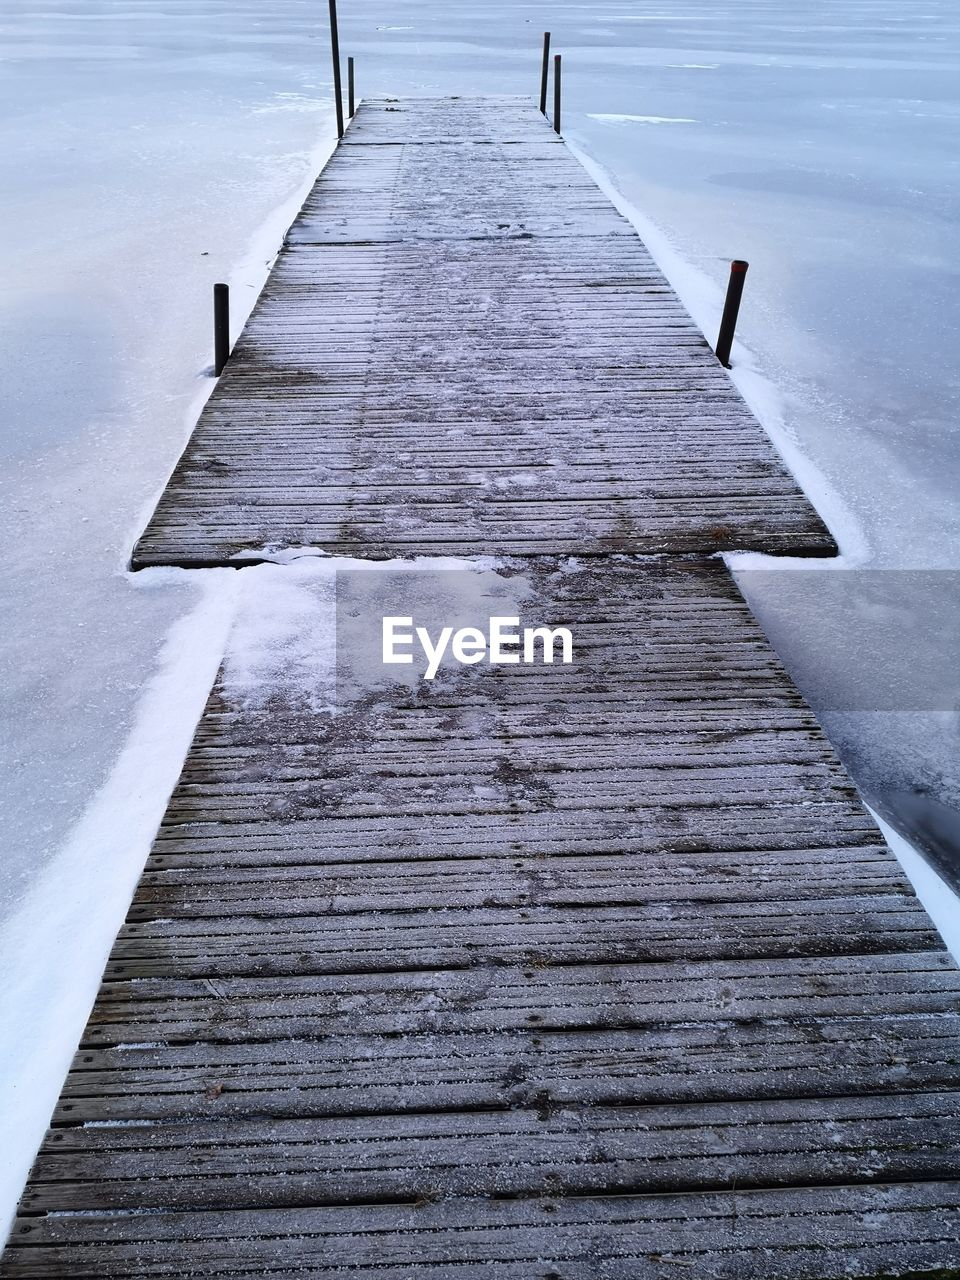 direction, the way forward, wood - material, snow, no people, day, cold temperature, winter, pier, water, nature, footpath, diminishing perspective, outdoors, boardwalk, architecture, built structure, frozen, wood, wood paneling, long, surface level